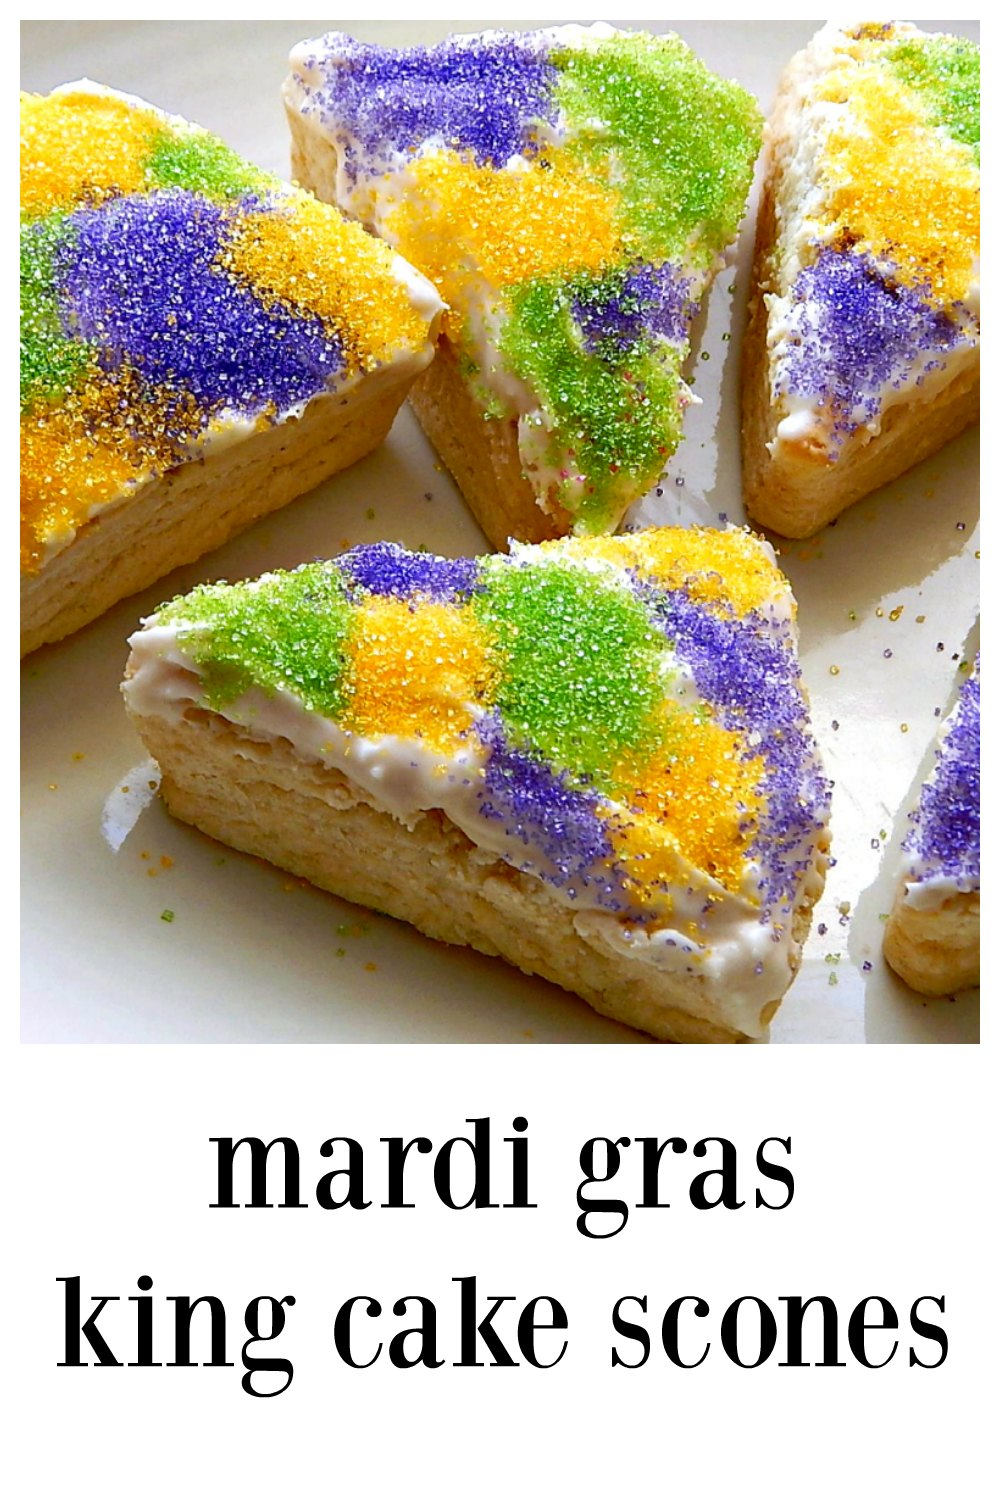 Mardi Gras King Cake Scones are a fun take on the famous New Orlean's King Cake & have cream cheese & almond flavor just like the original. Bonus that these are quick and easy! These would be so perfect for a Brunch. #KingCakeScones #MardiGrasScones #LouisianaCookin' #MardiGrasRecipes #SconeCreamCheese